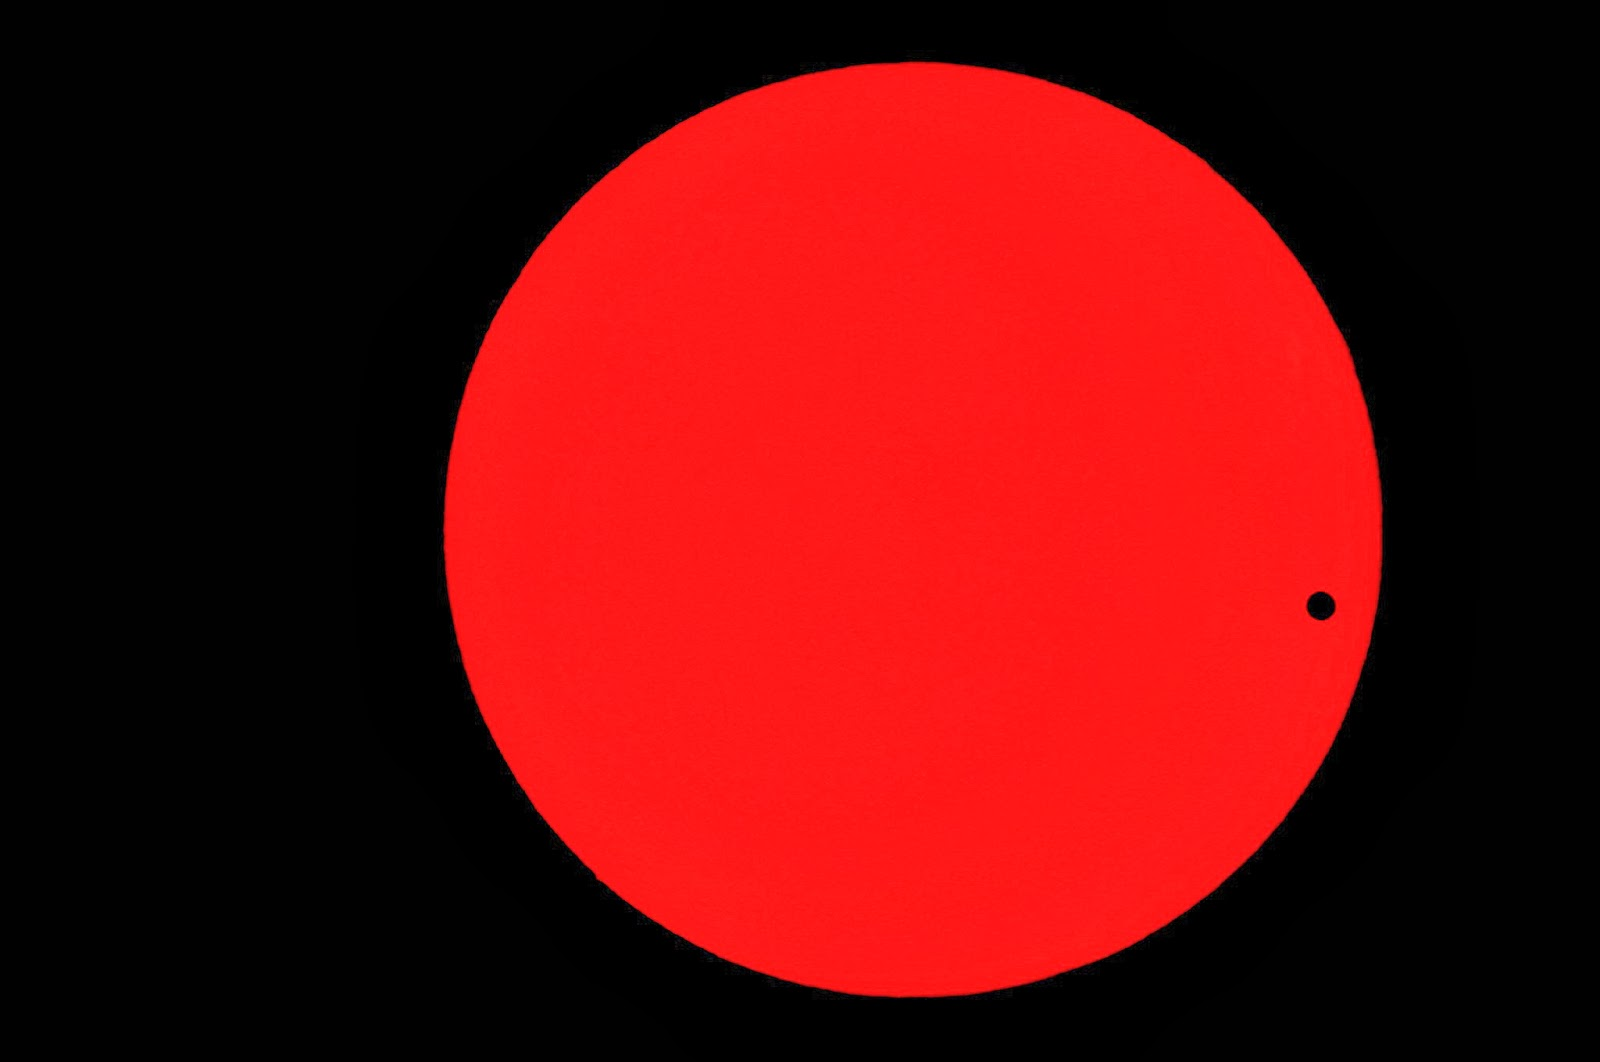 The transit of Venus 2004